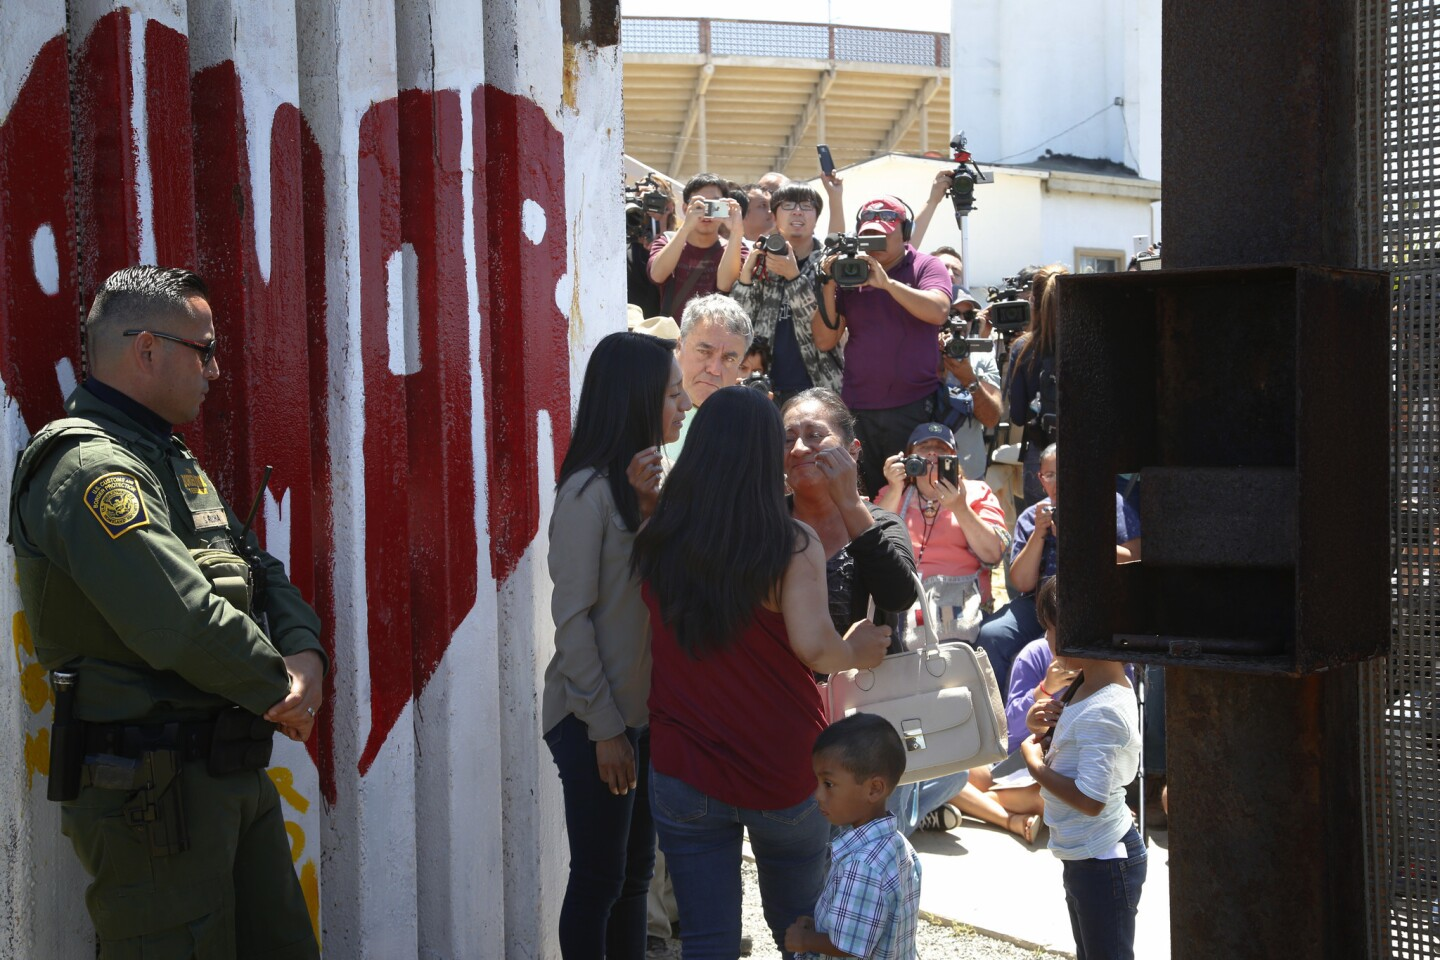 At Border Field State Park on Sunday, families north of the border were allowed to briefly meet with loved ones living in Mexico through an open gate.